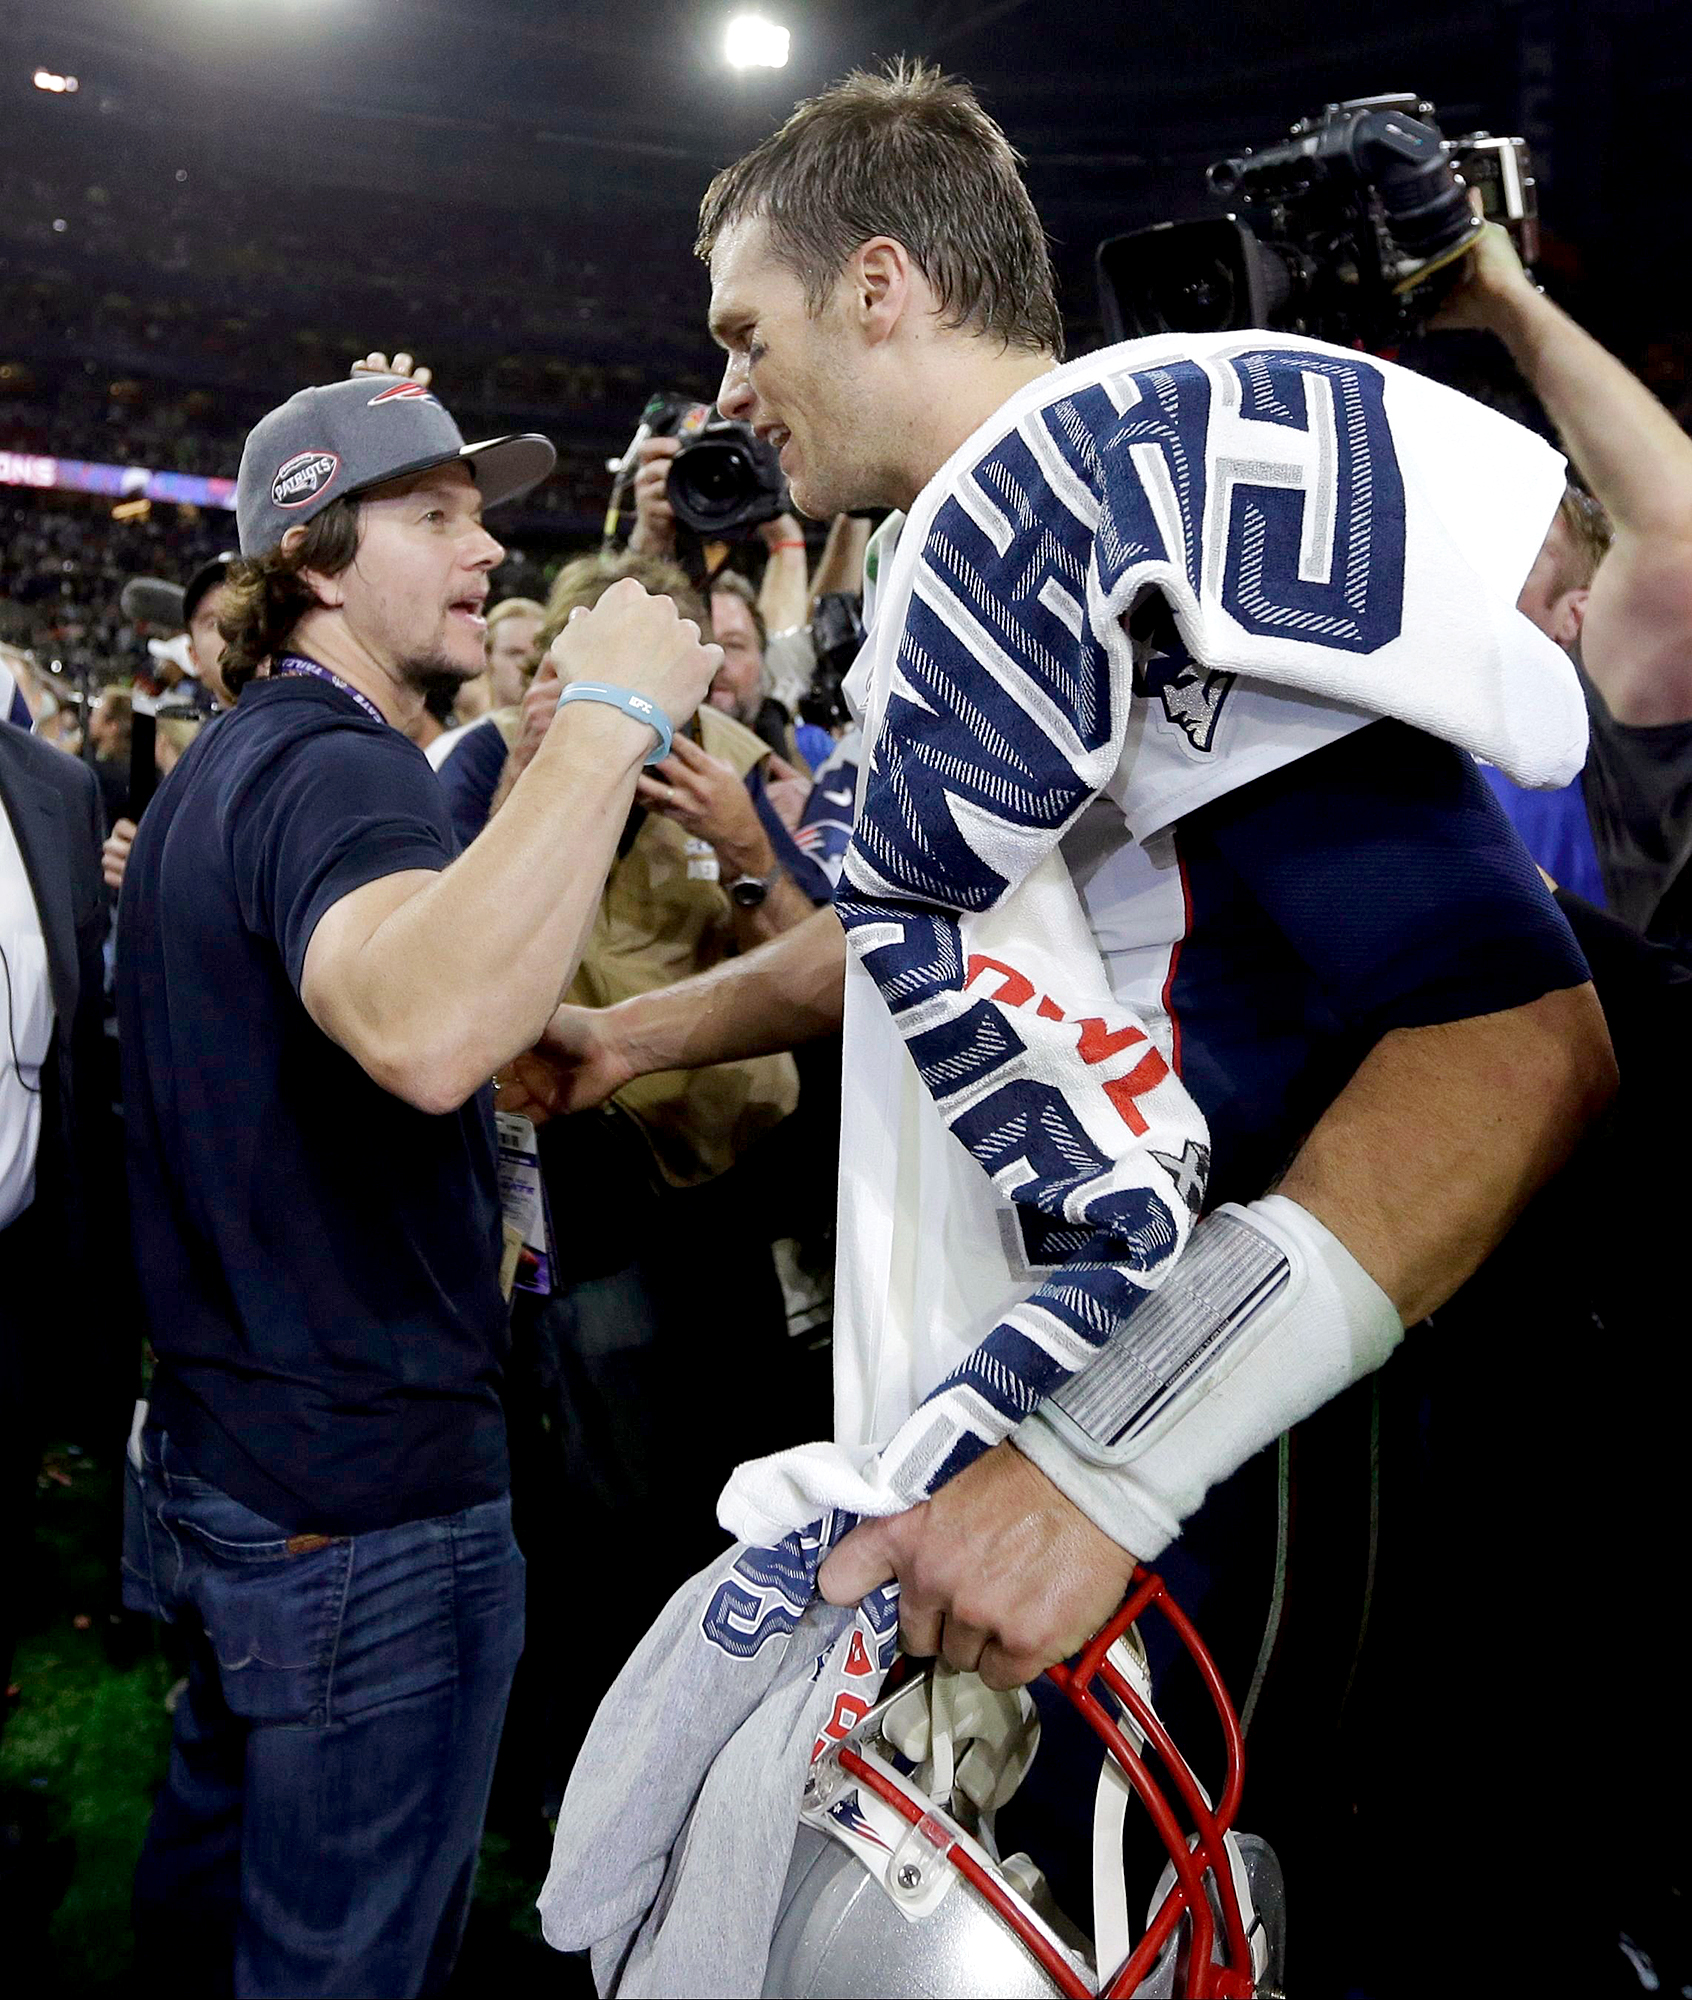 Mark-Wahlberg-Weighs-In-on-Tom-Brady's-Future-With-Patriots-